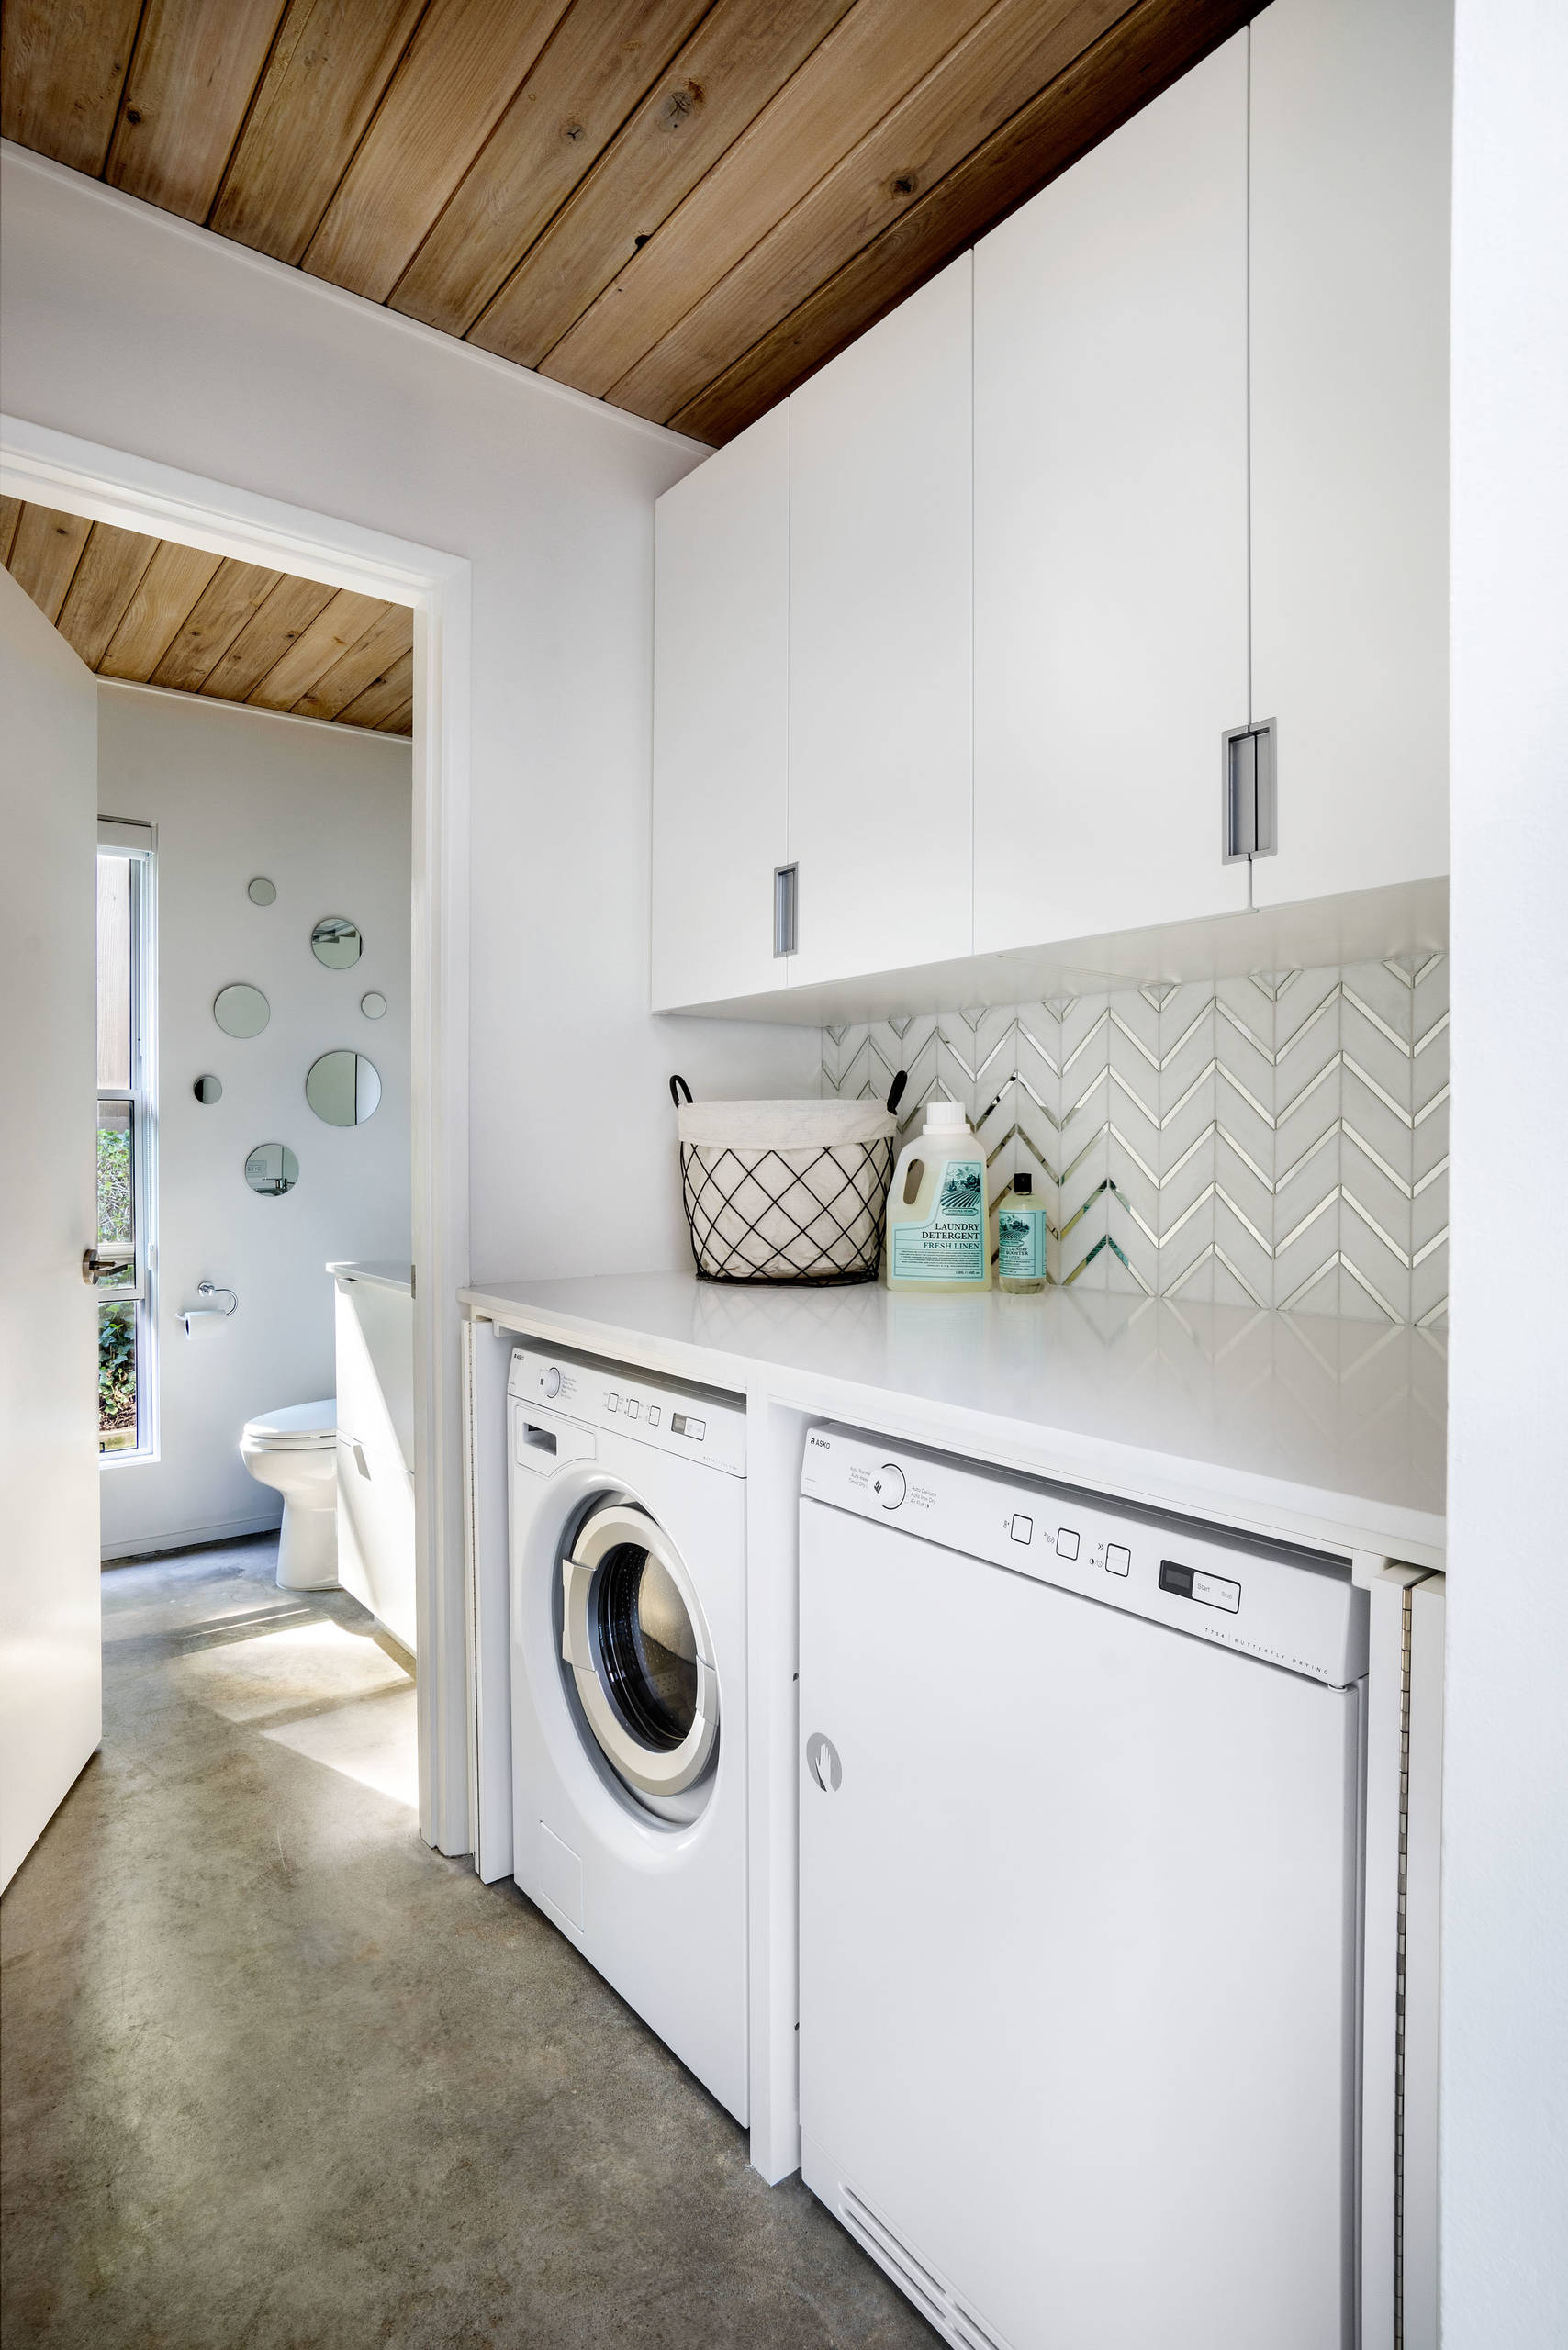 Century Laundry : century, laundry, Beautiful, Mid-Century, Modern, Laundry, Pictures, Ideas, March,, Houzz